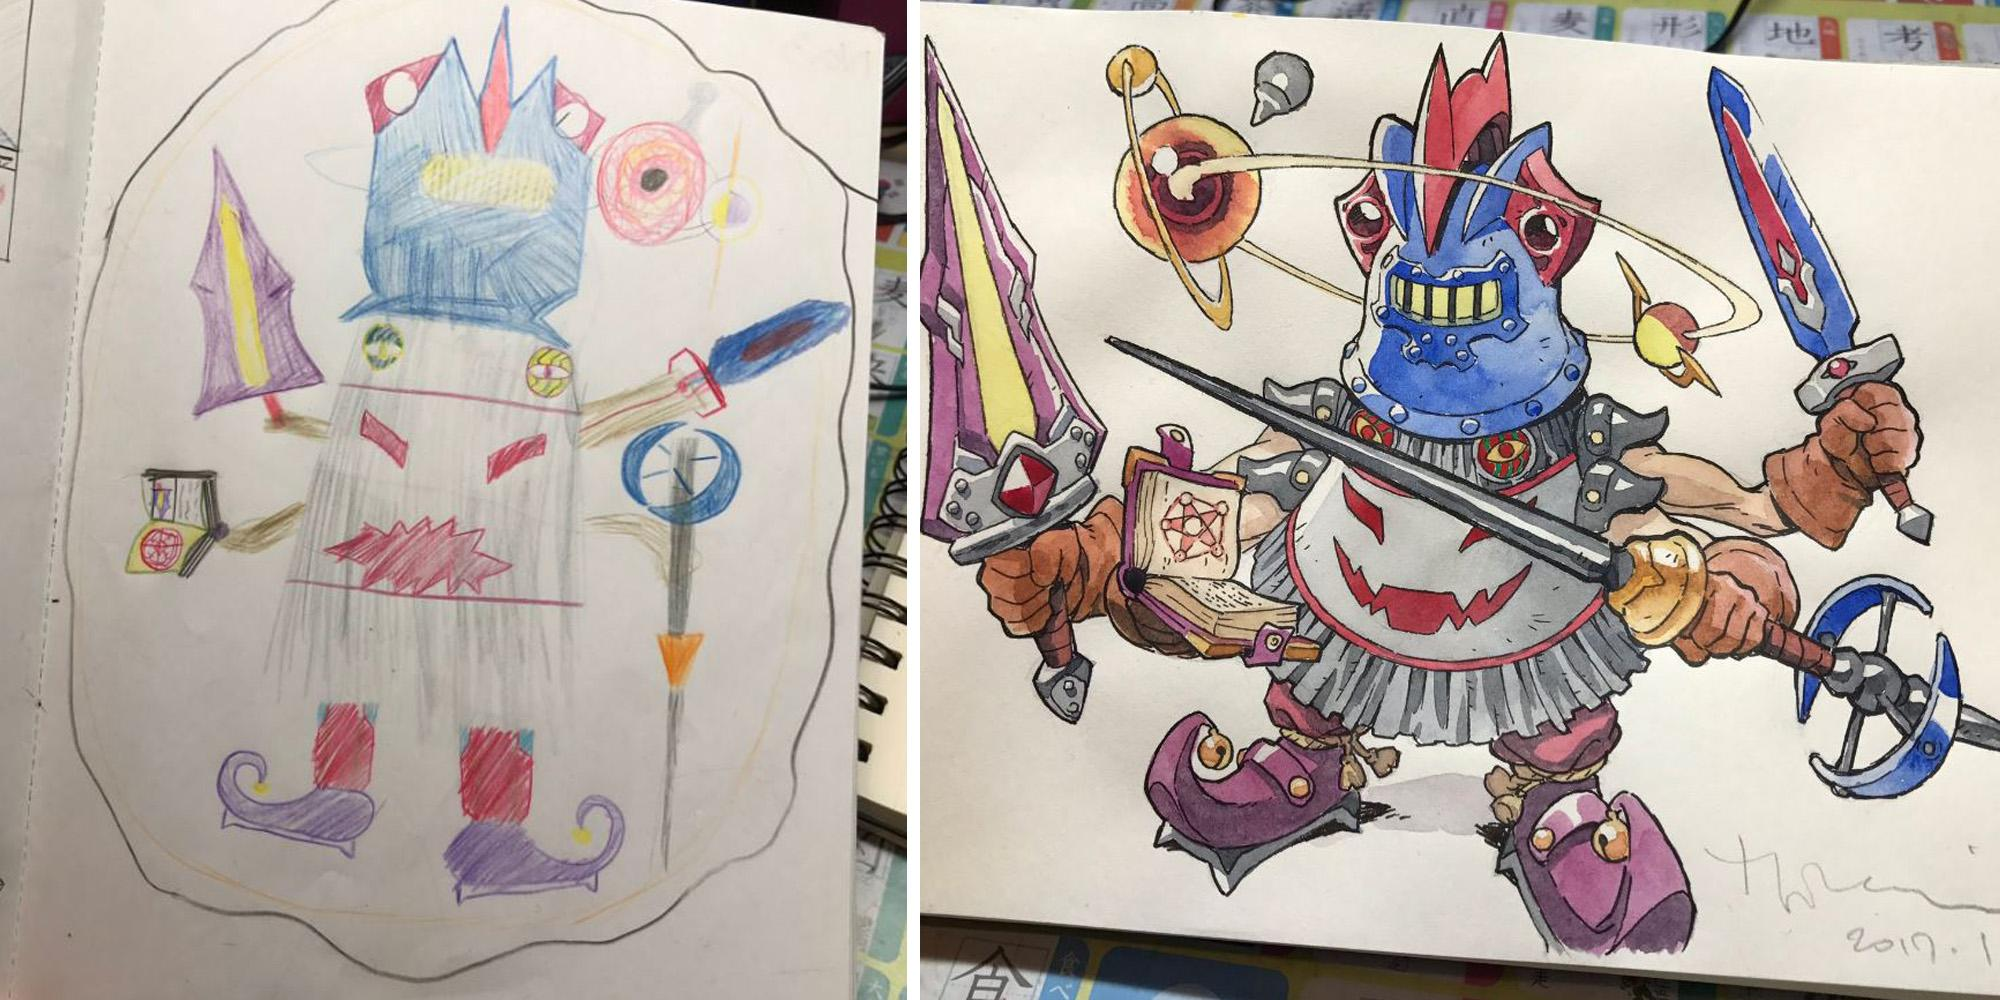 how to turn drawings into digital art